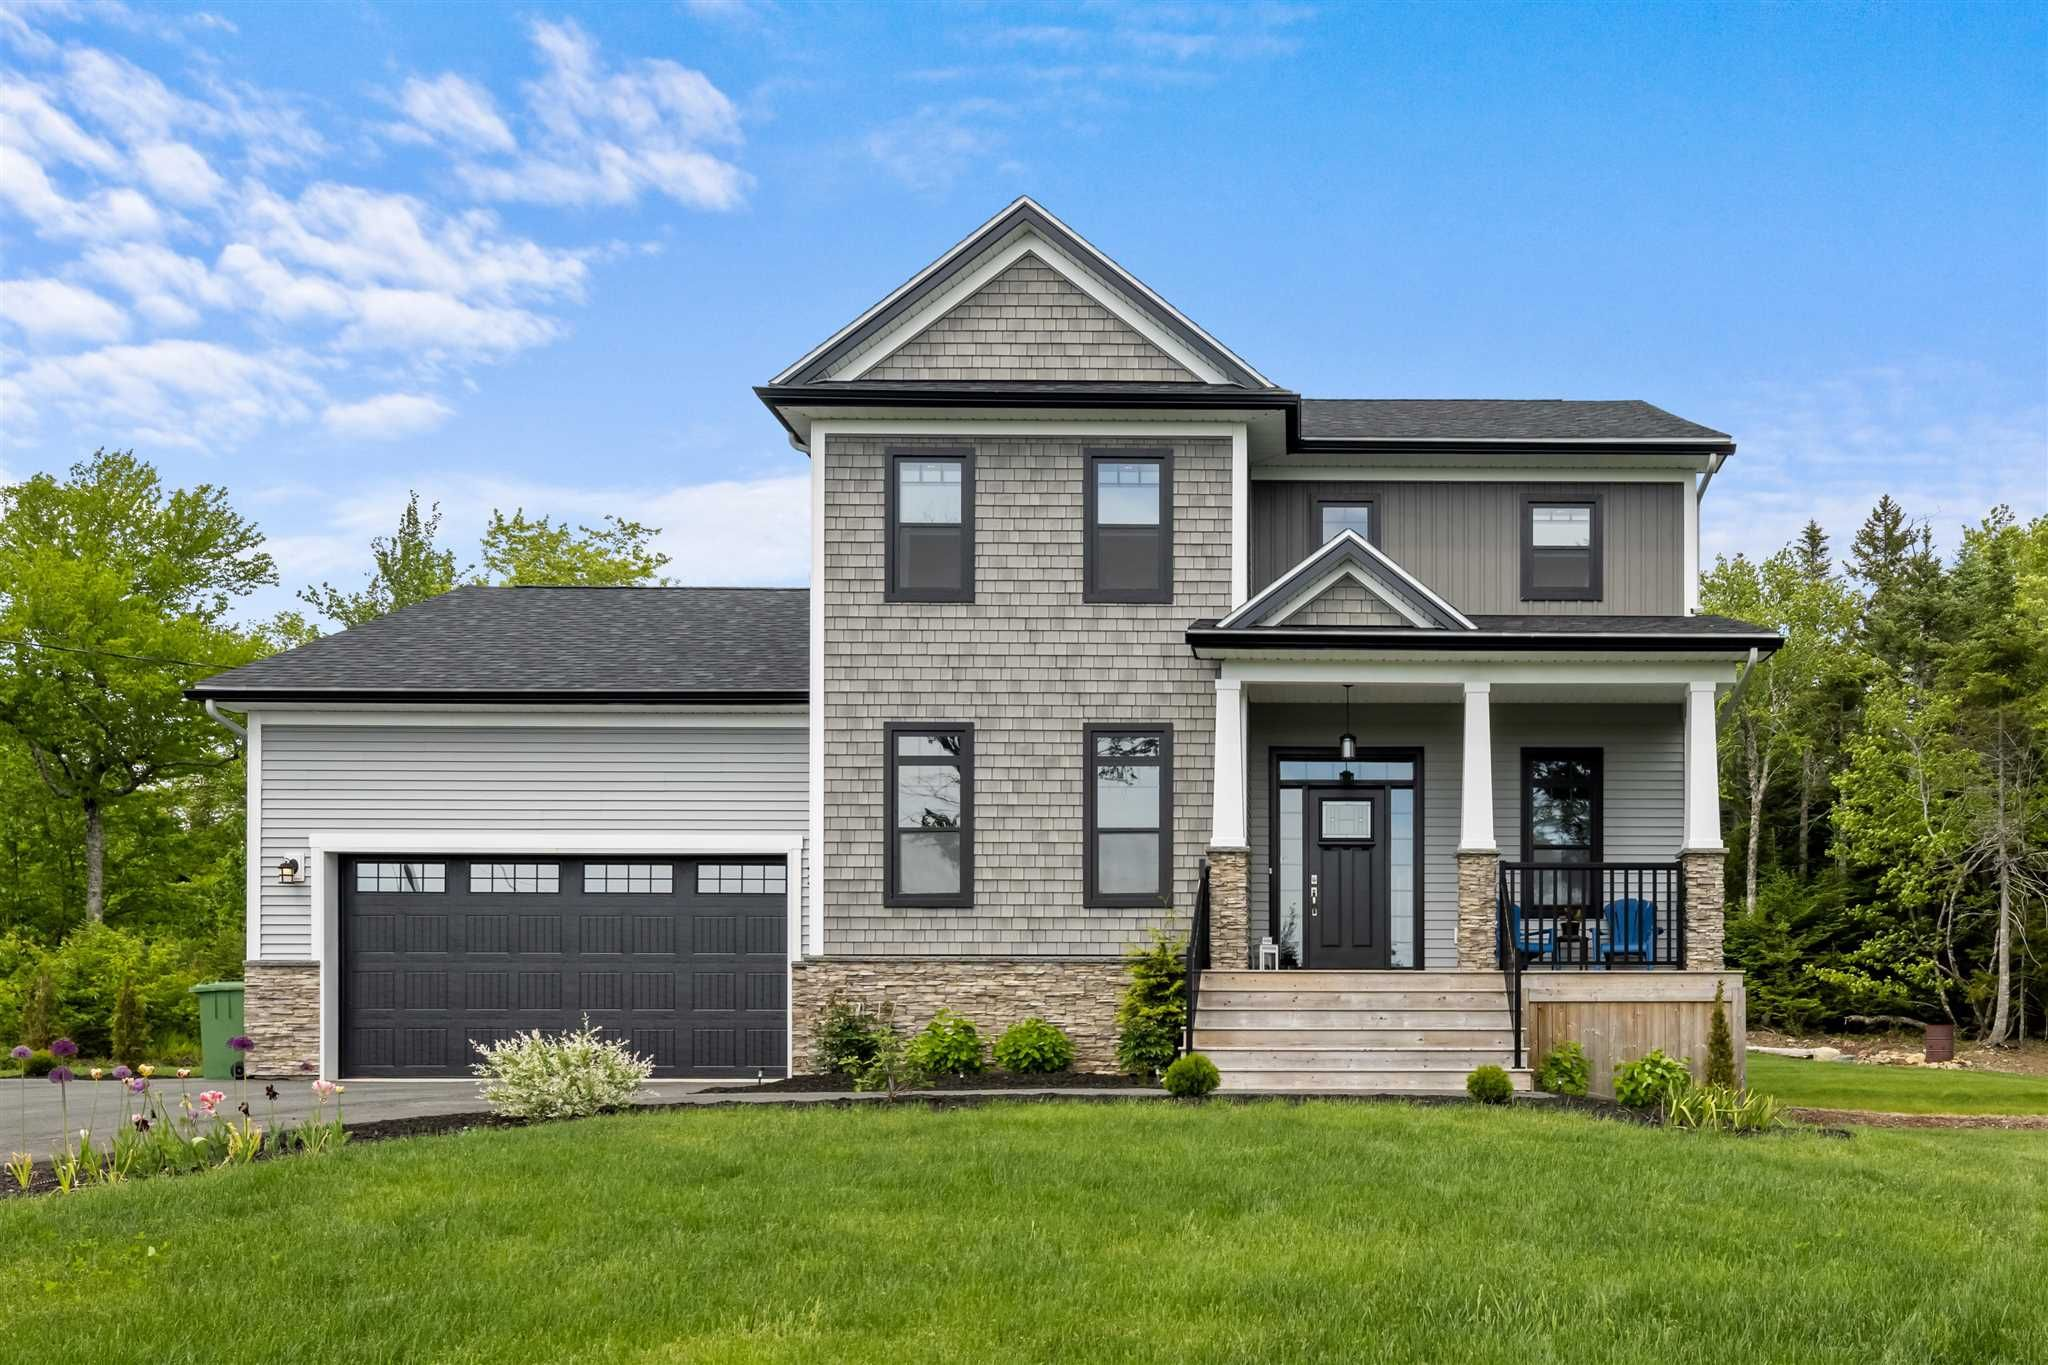 Main Photo: 475 McCabe Lake Drive in Middle Sackville: 25-Sackville Residential for sale (Halifax-Dartmouth)  : MLS®# 202114302